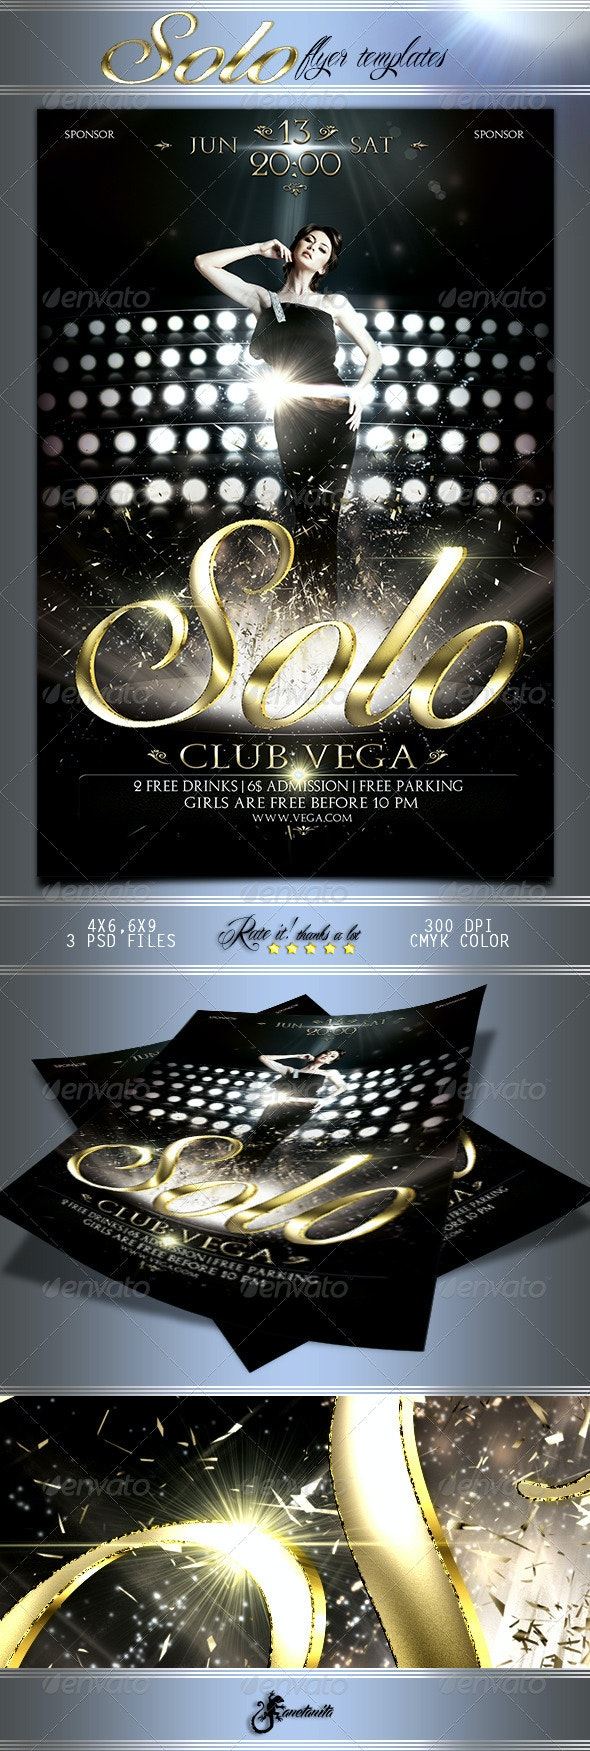 Deluxe Solo Flyer - Clubs & Parties Events